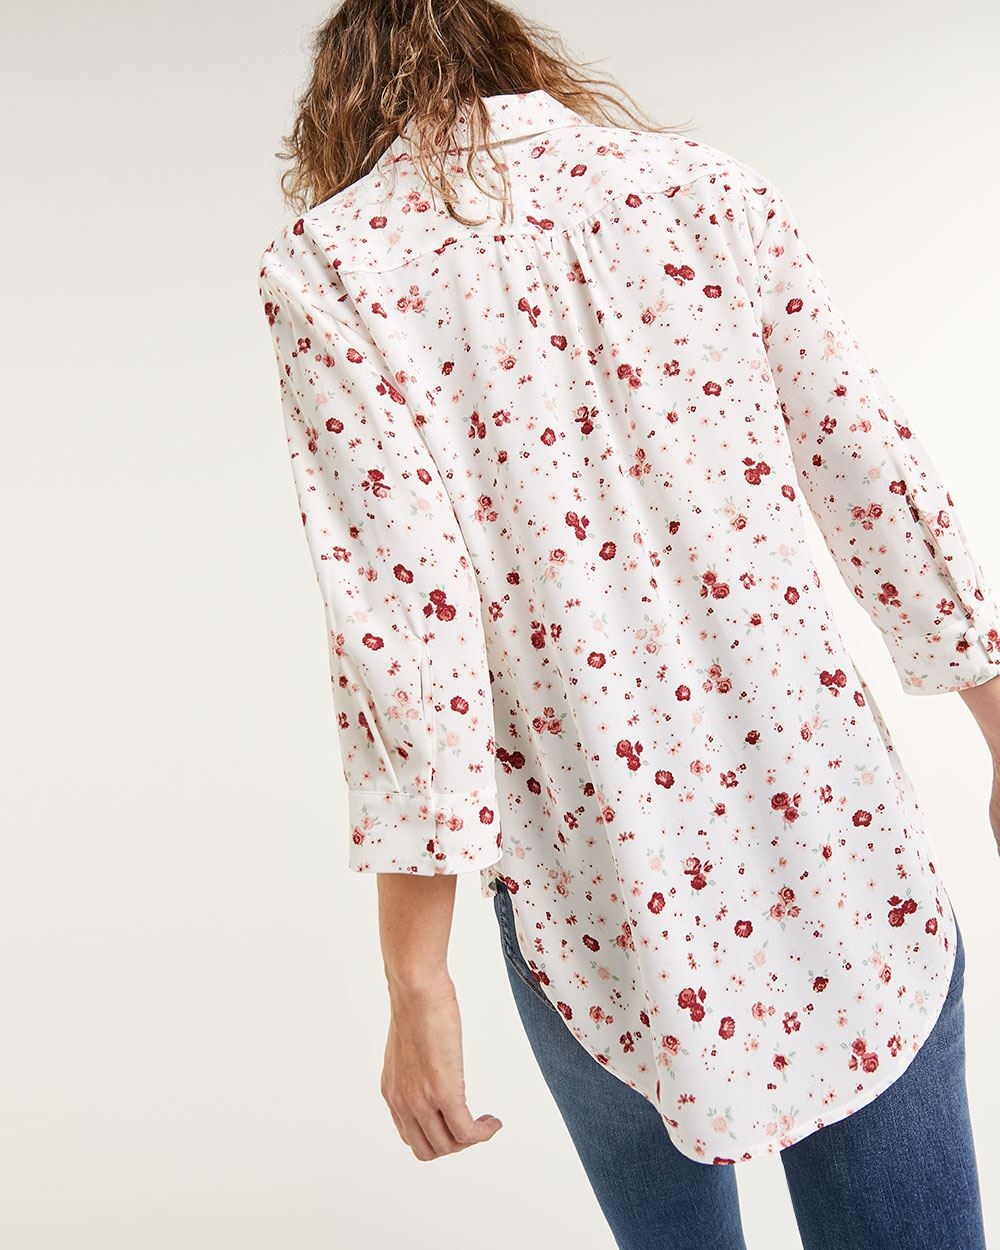 3/4 Sleeve Johnny Collar Printed Blouse - Petite